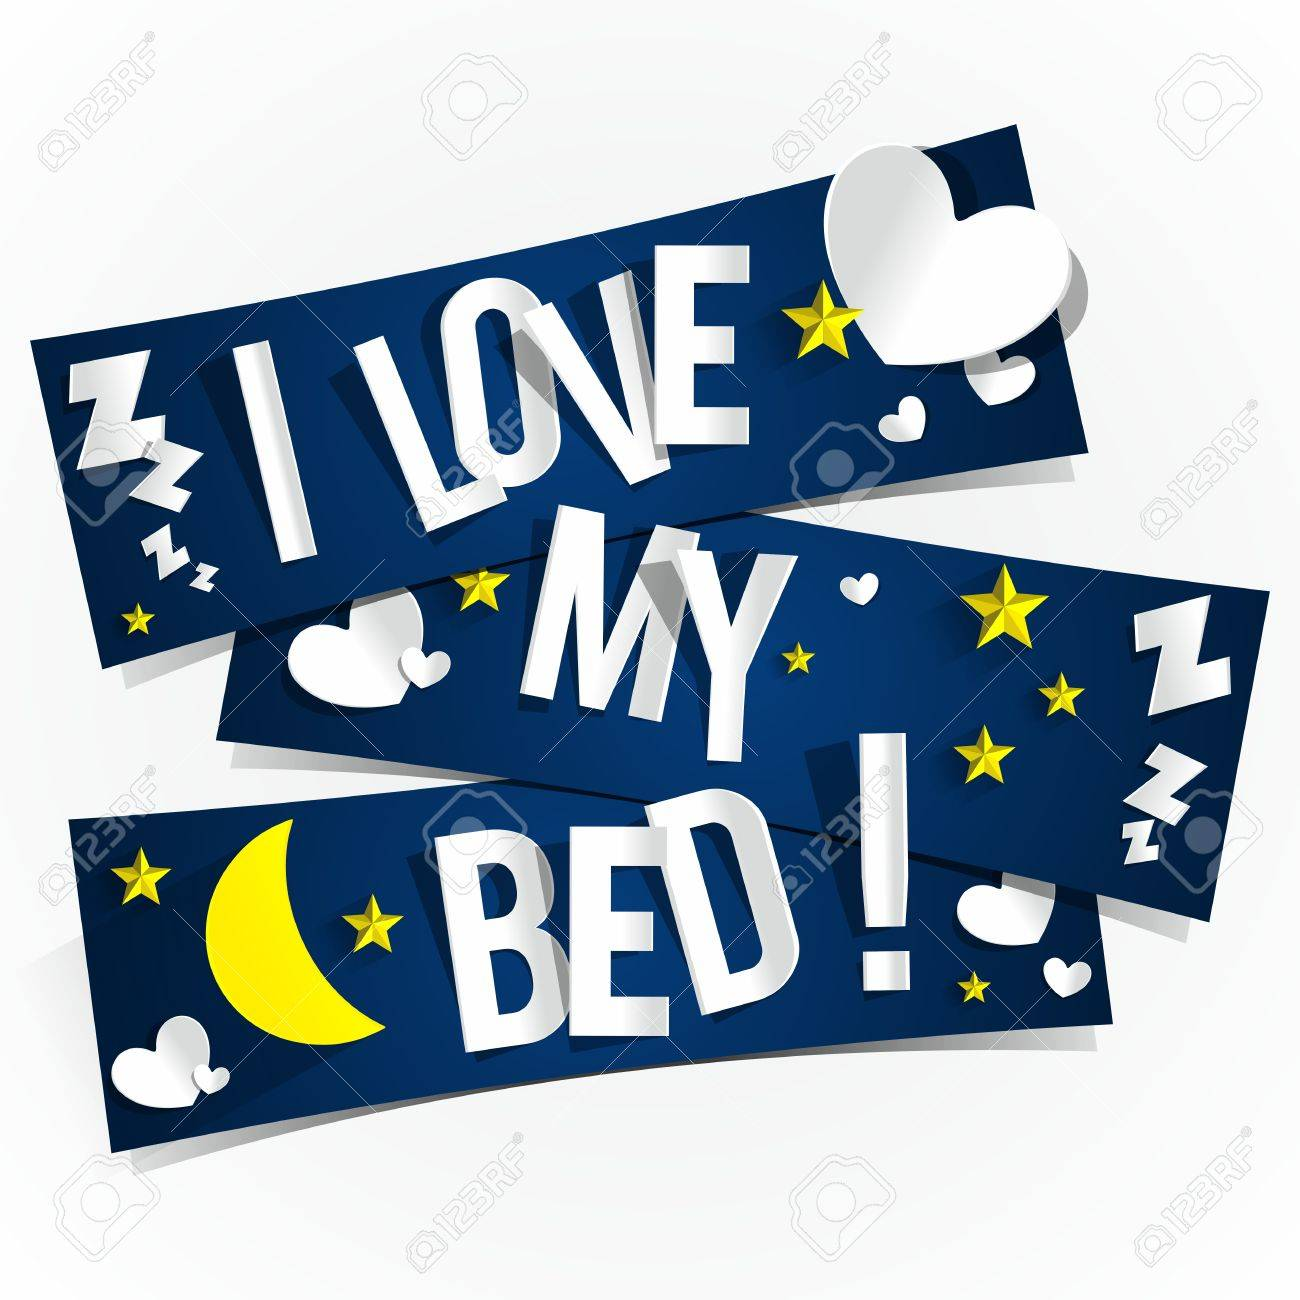 I Love My Bed i love my bed banners vector illustration royalty free cliparts